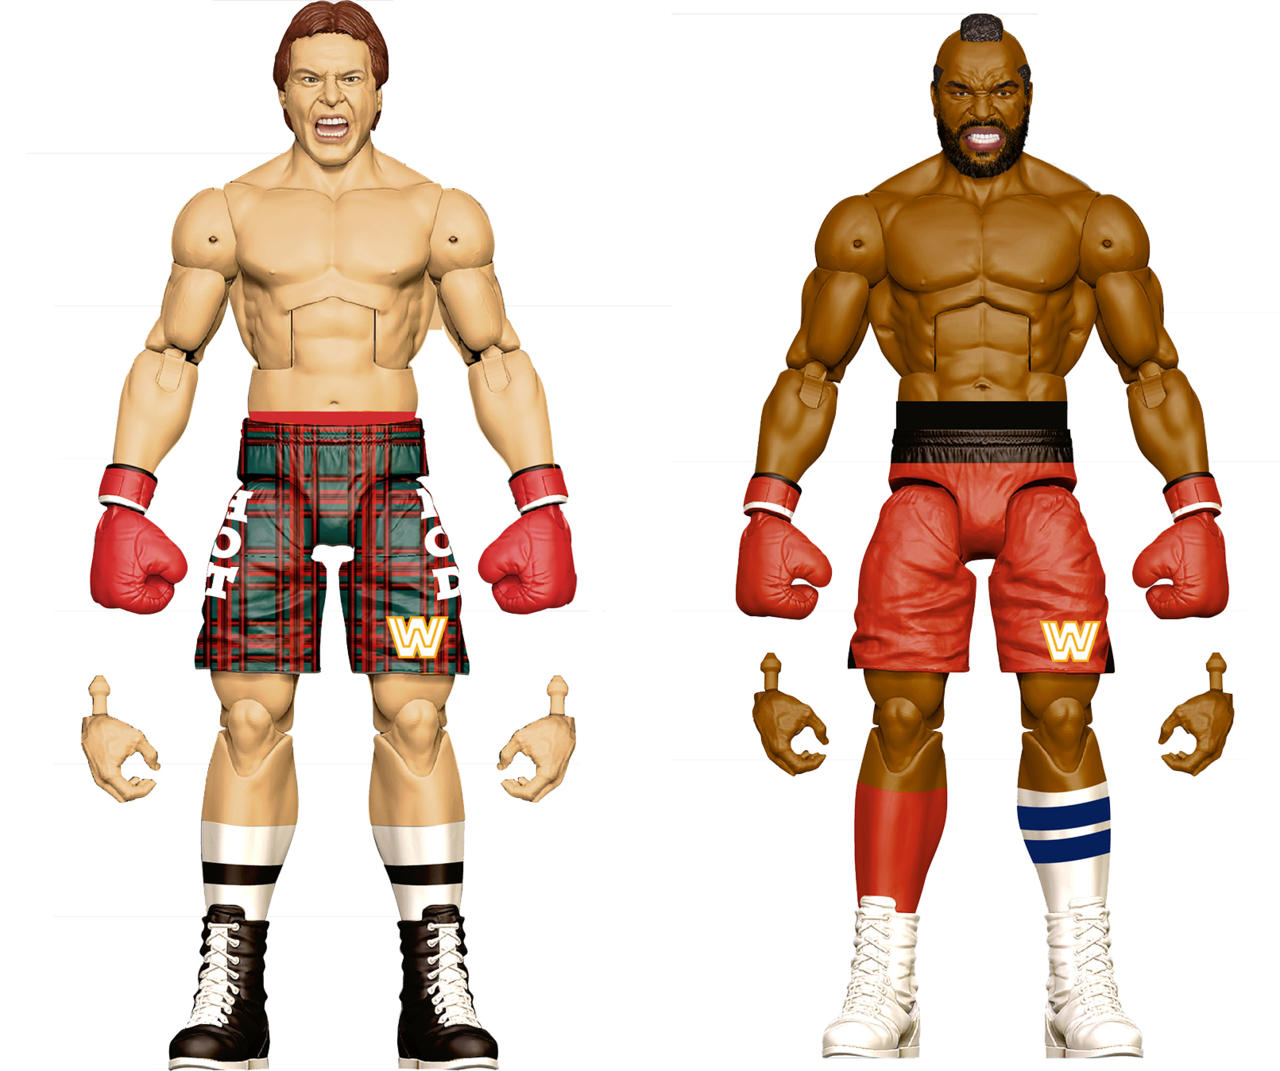 Roddy Piper and Mr. T Wrestlemania II Two-Pack